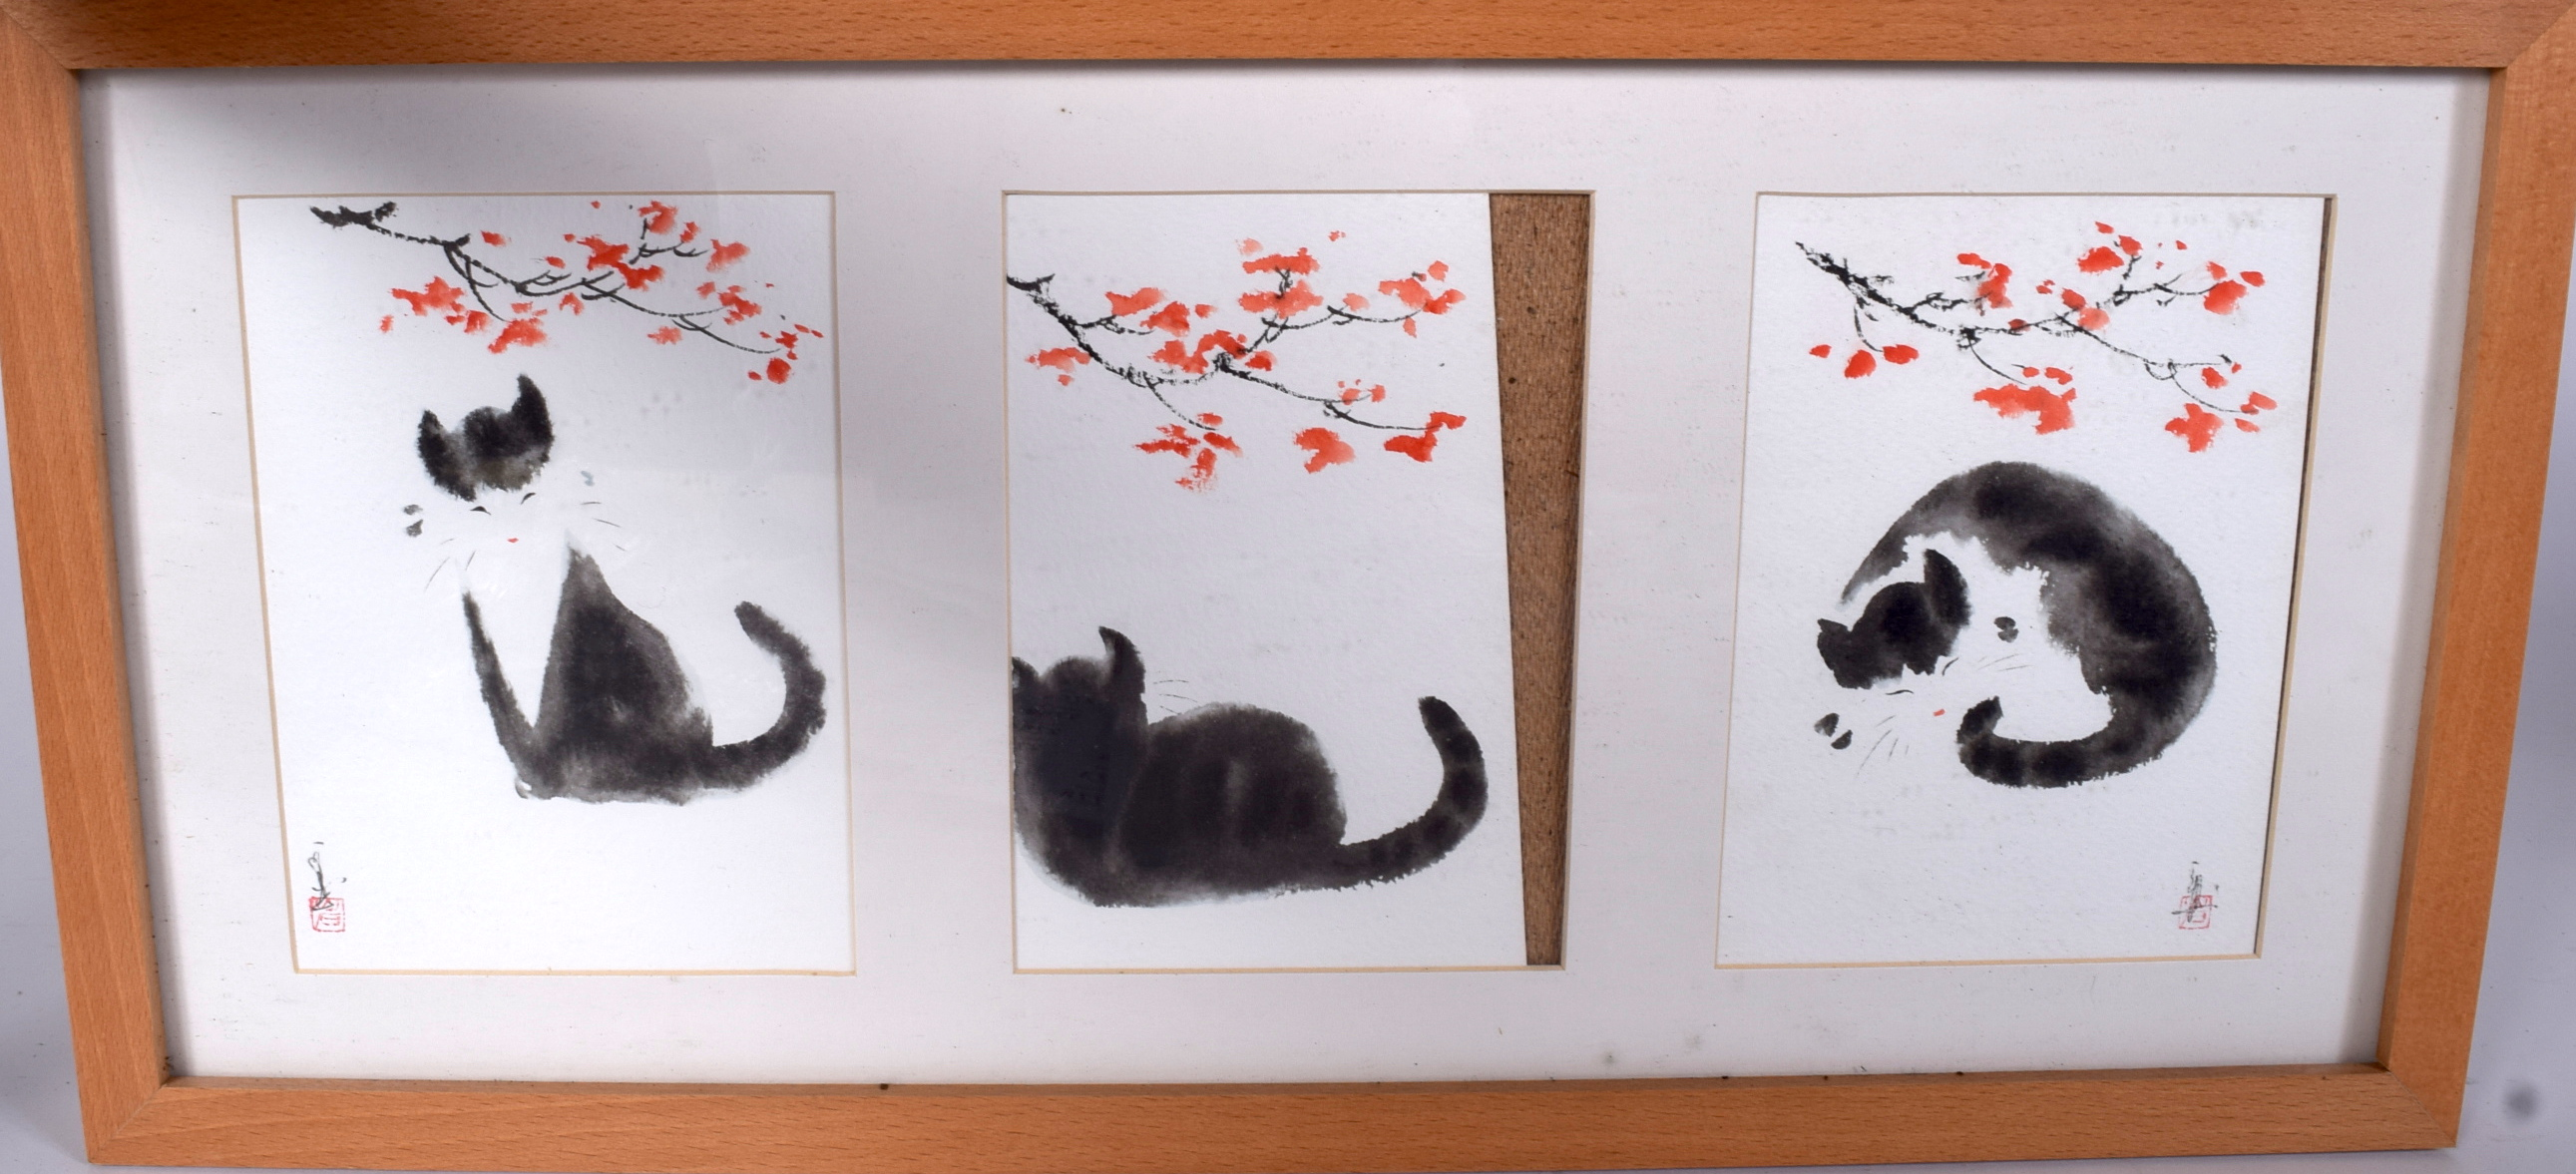 Lot 2705 - JAPANESE SCHOOL (early 20th century) FRAMED SET OF THREE WATERCOLOURS, each depicting a cat amongst